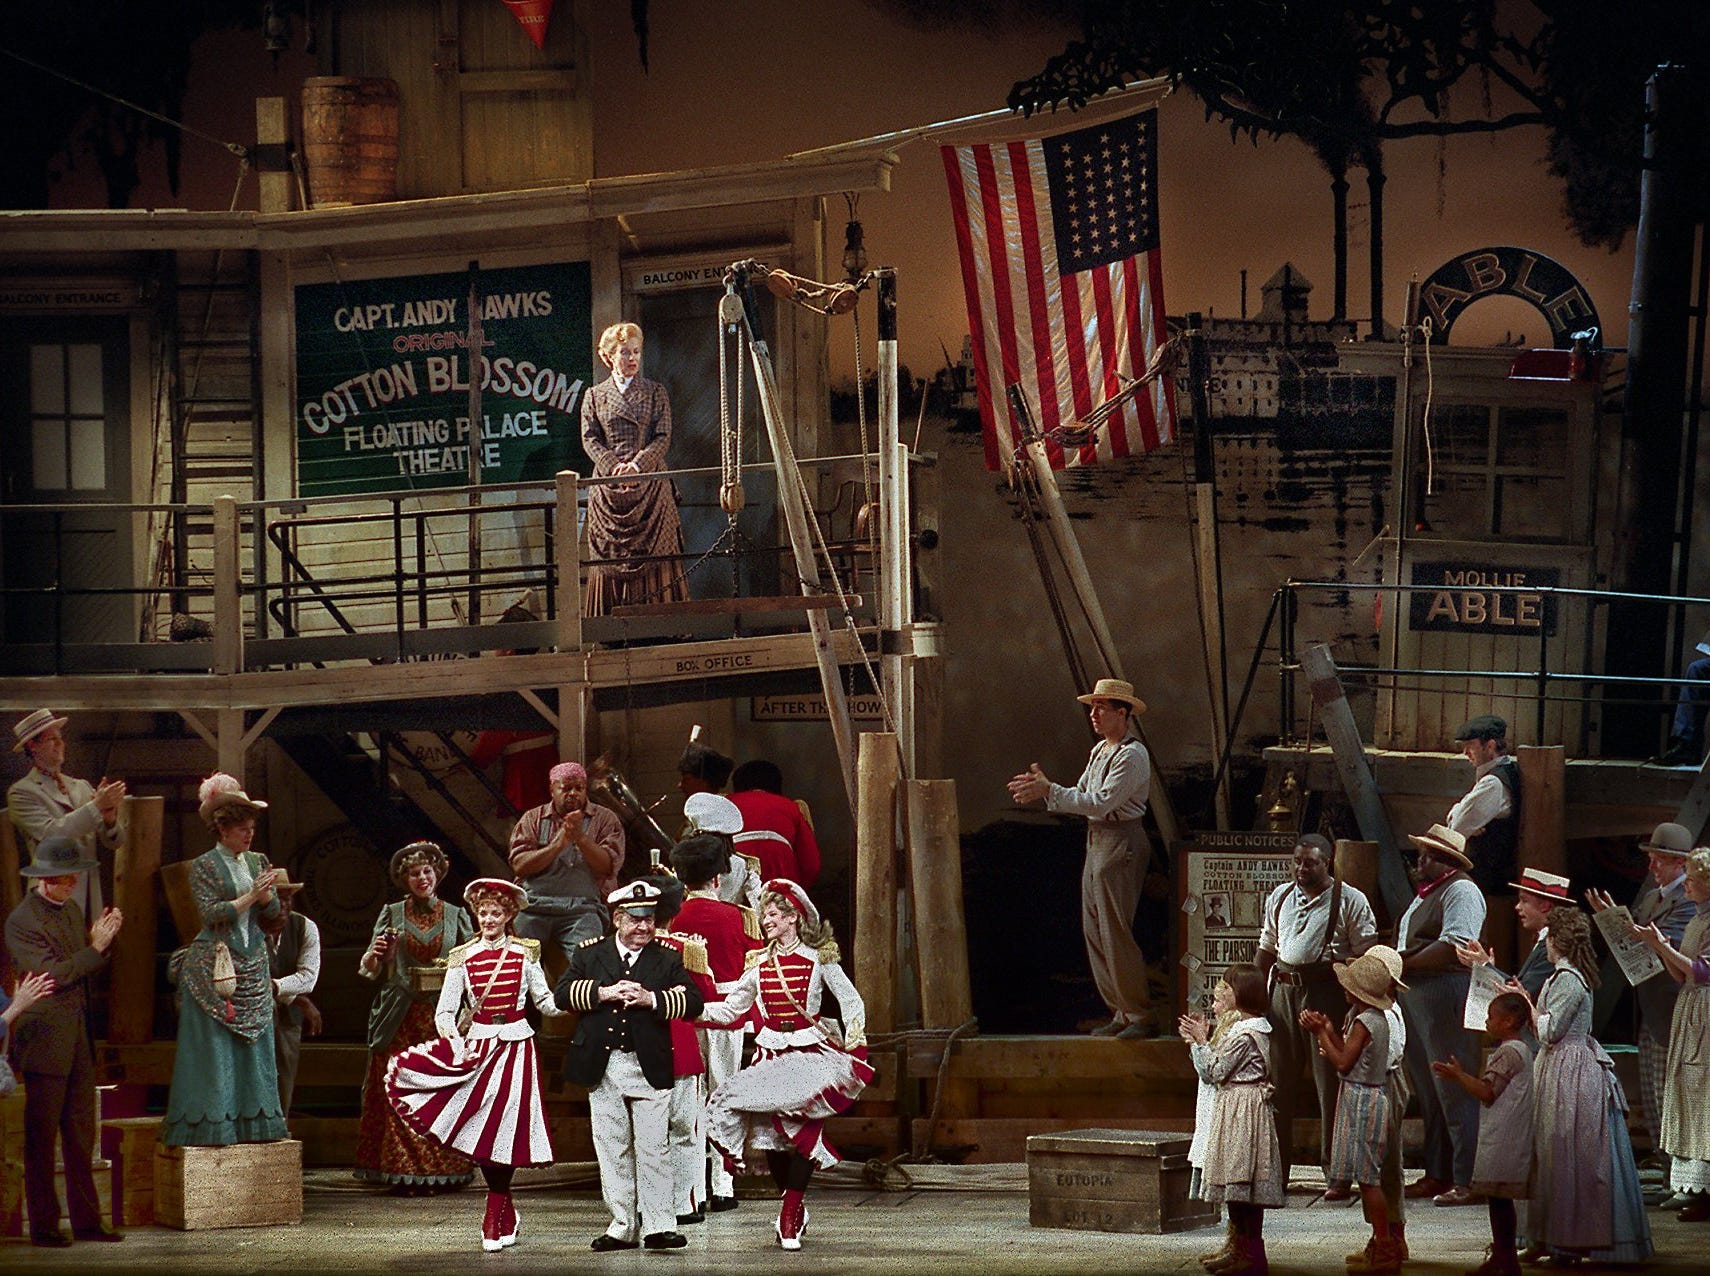 Actor Tom Bosley plays Capt. Andy Hawks (dancing, center) in Show Boat which is being performed at the Marcus Center for the Performing Arts in Milwaukee, WI., July 19, 1998.